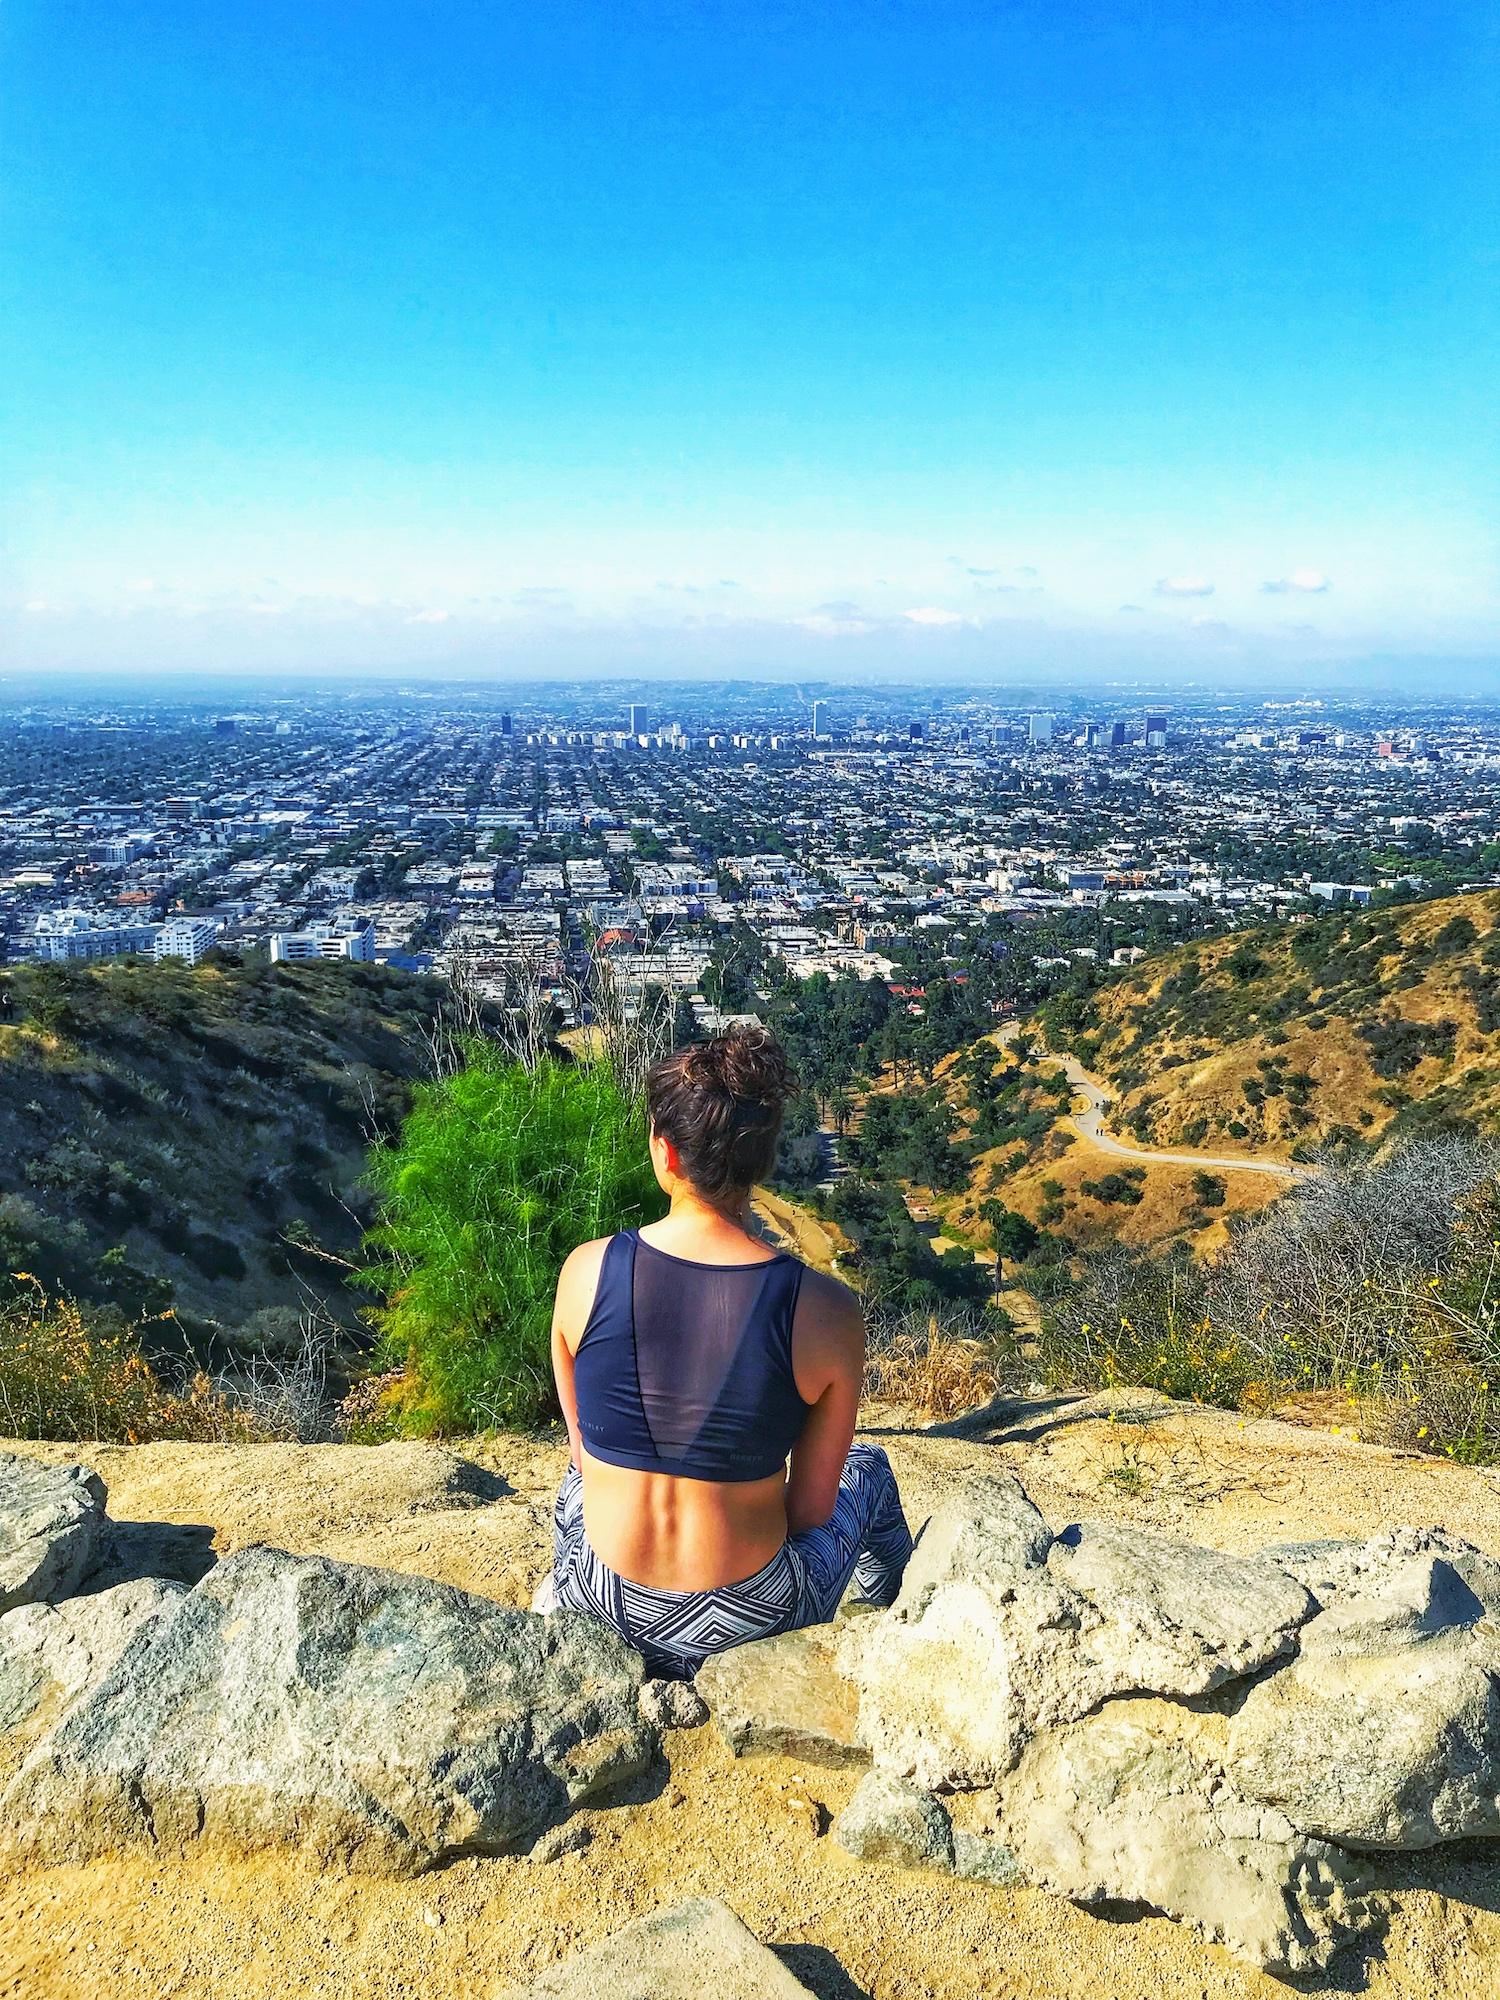 Runyon Canyon Park, California